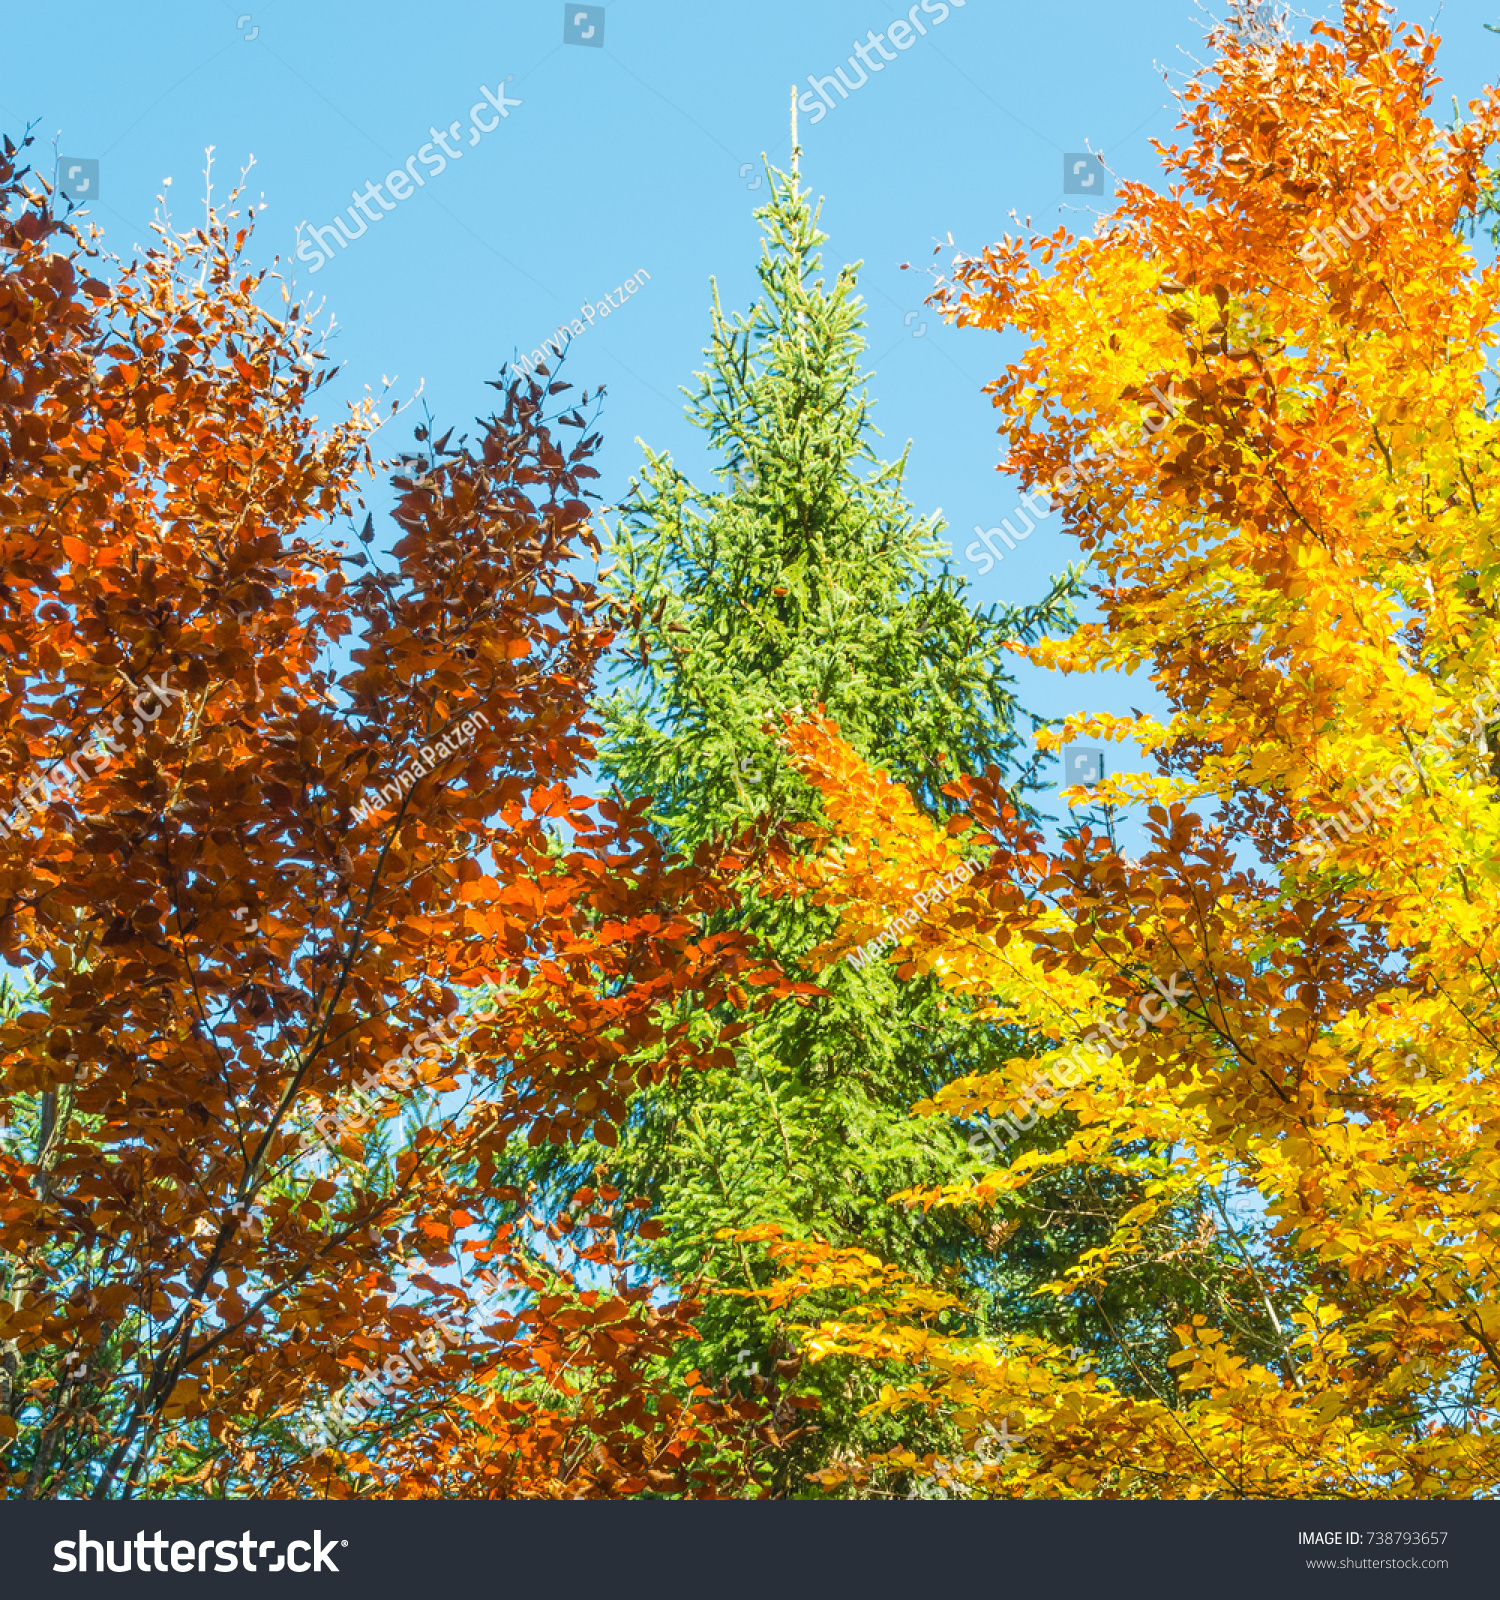 Bright Color Palette Autumn Forest Stock Photo 738793657 - Shutterstock